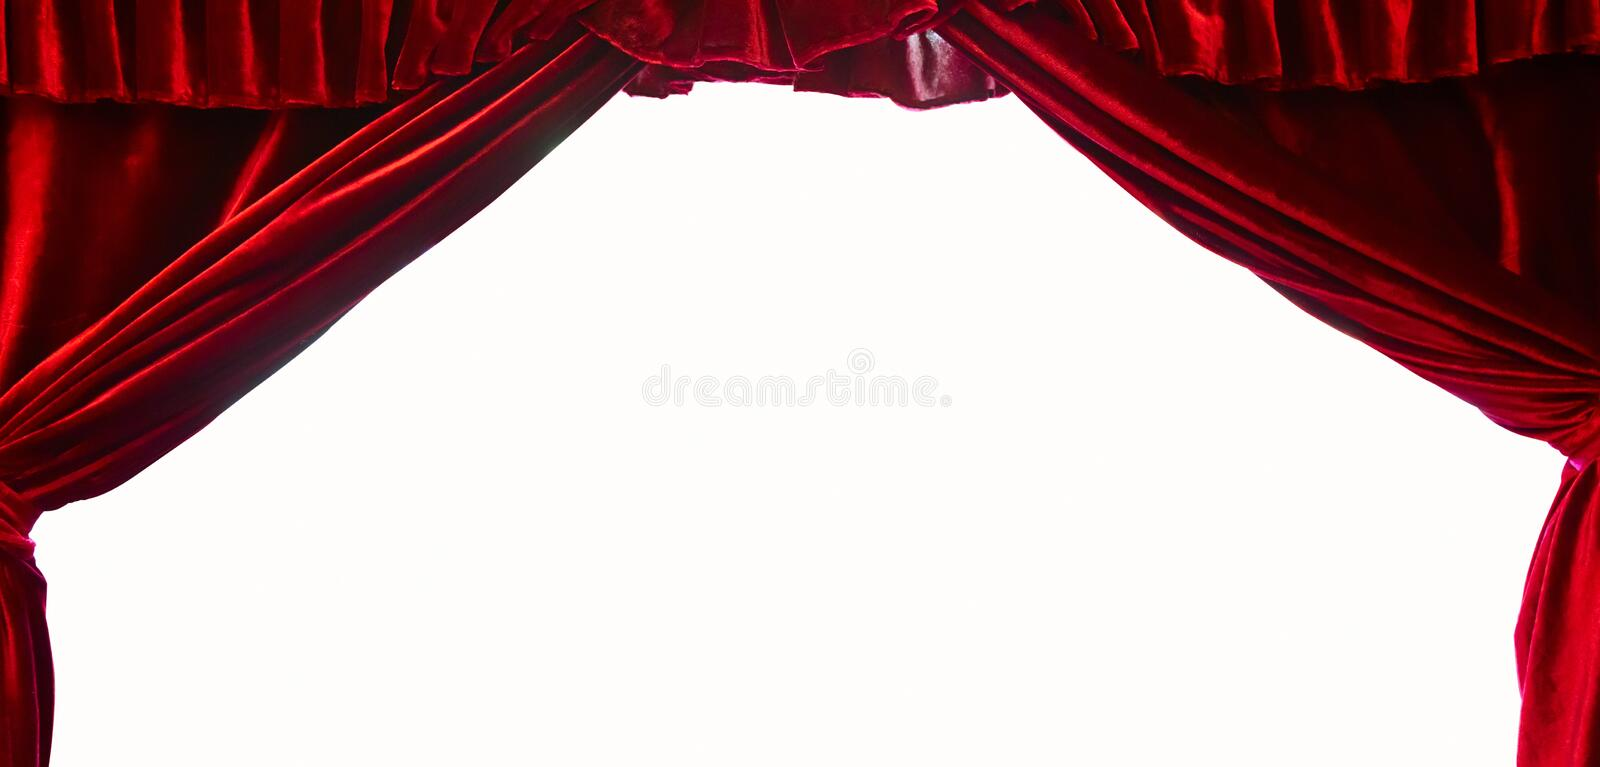 Dark red stage theater curtain isolated on white background royalty free stock images